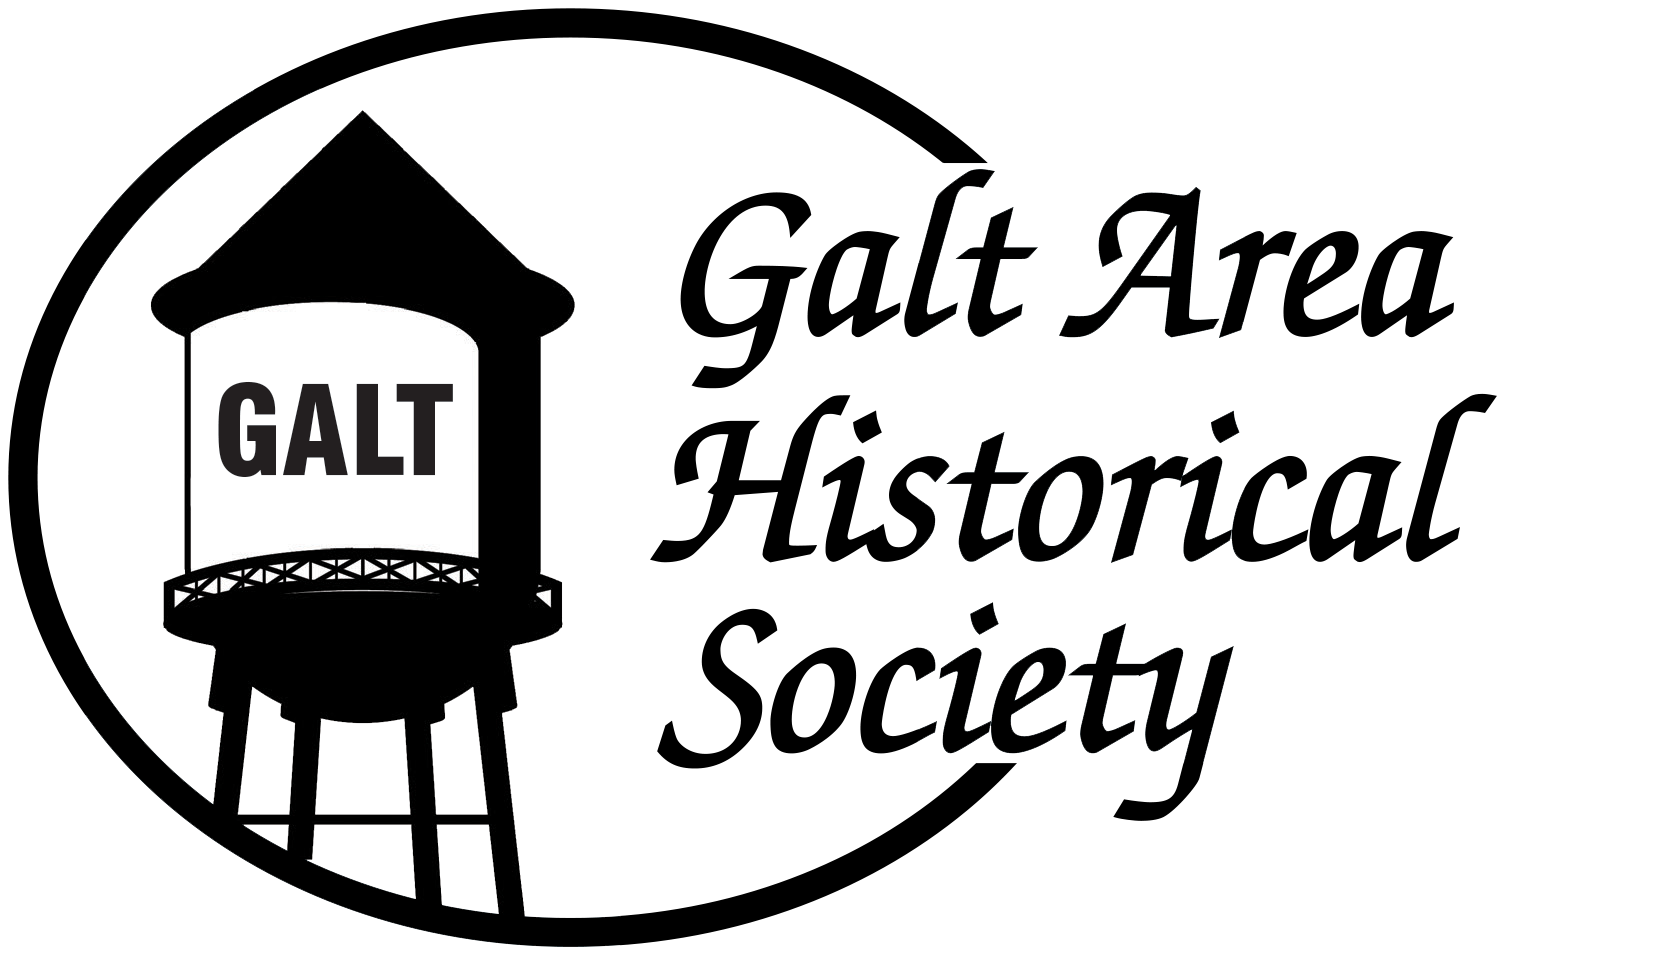 Galt Area Historical Society logo with a drawing of the Galt Water Tower